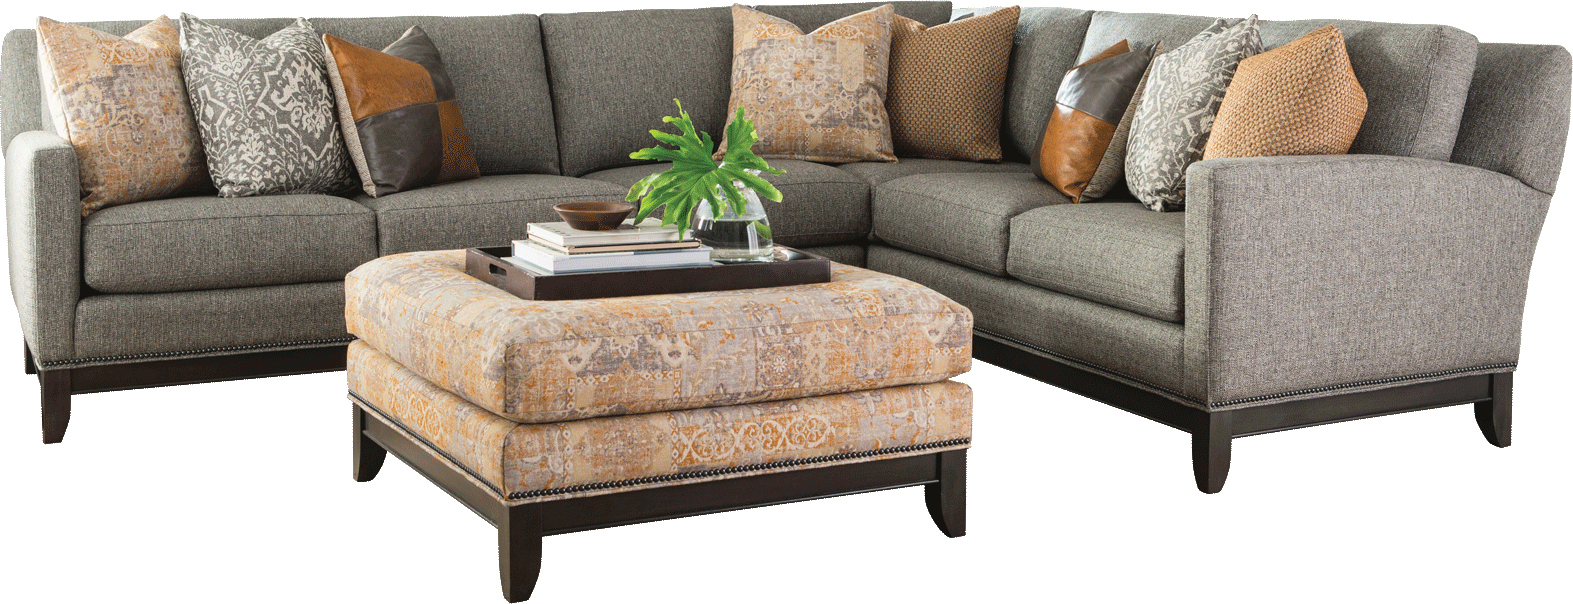 Download HD Smith Brothers Sofa.